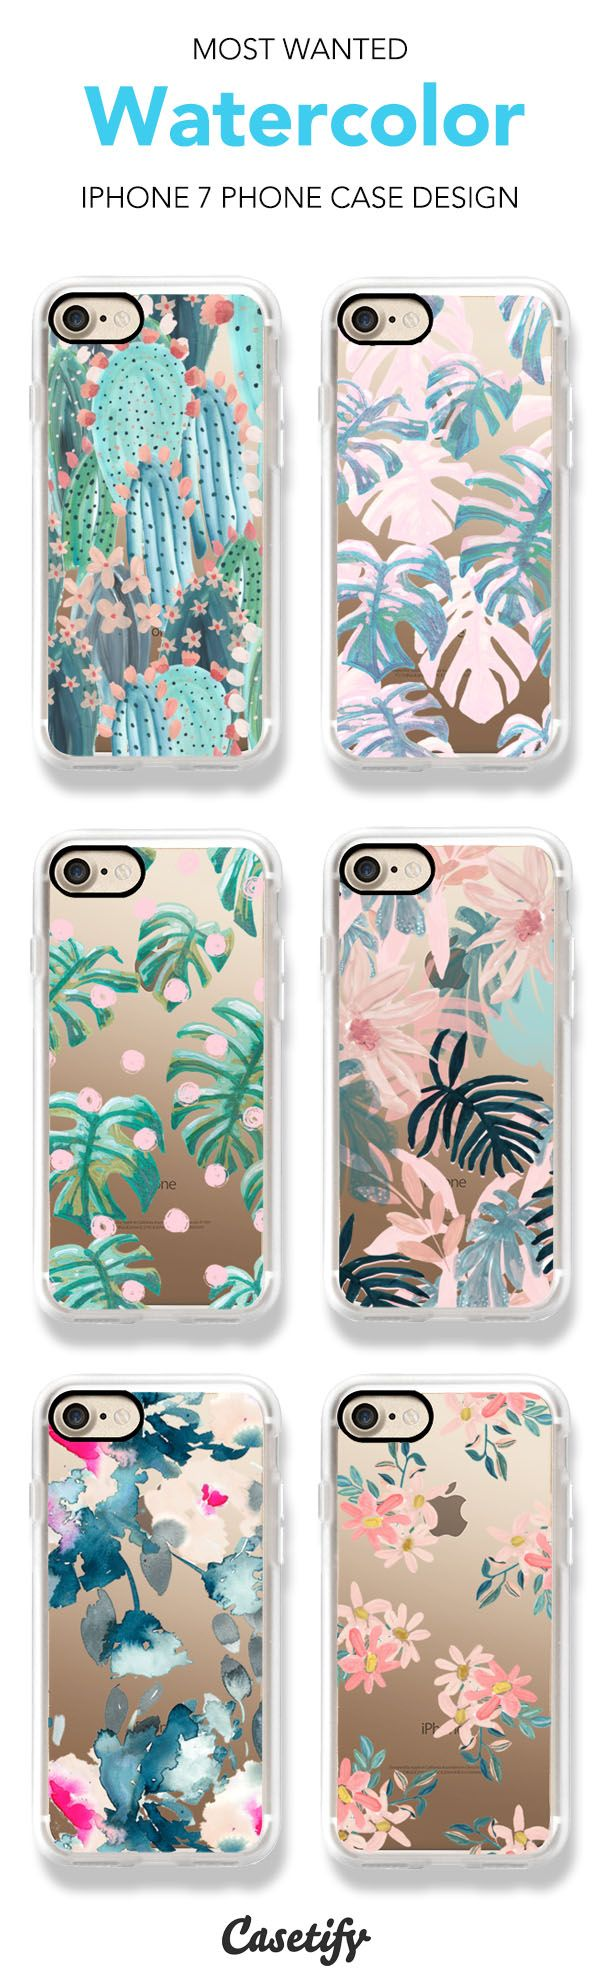 Most wanted Watercolor iPhone 7 and iPhone 7 Plus case @designlovefest Shop them all here > https://www.casetify.com/artworks/rd9xaSvIqP